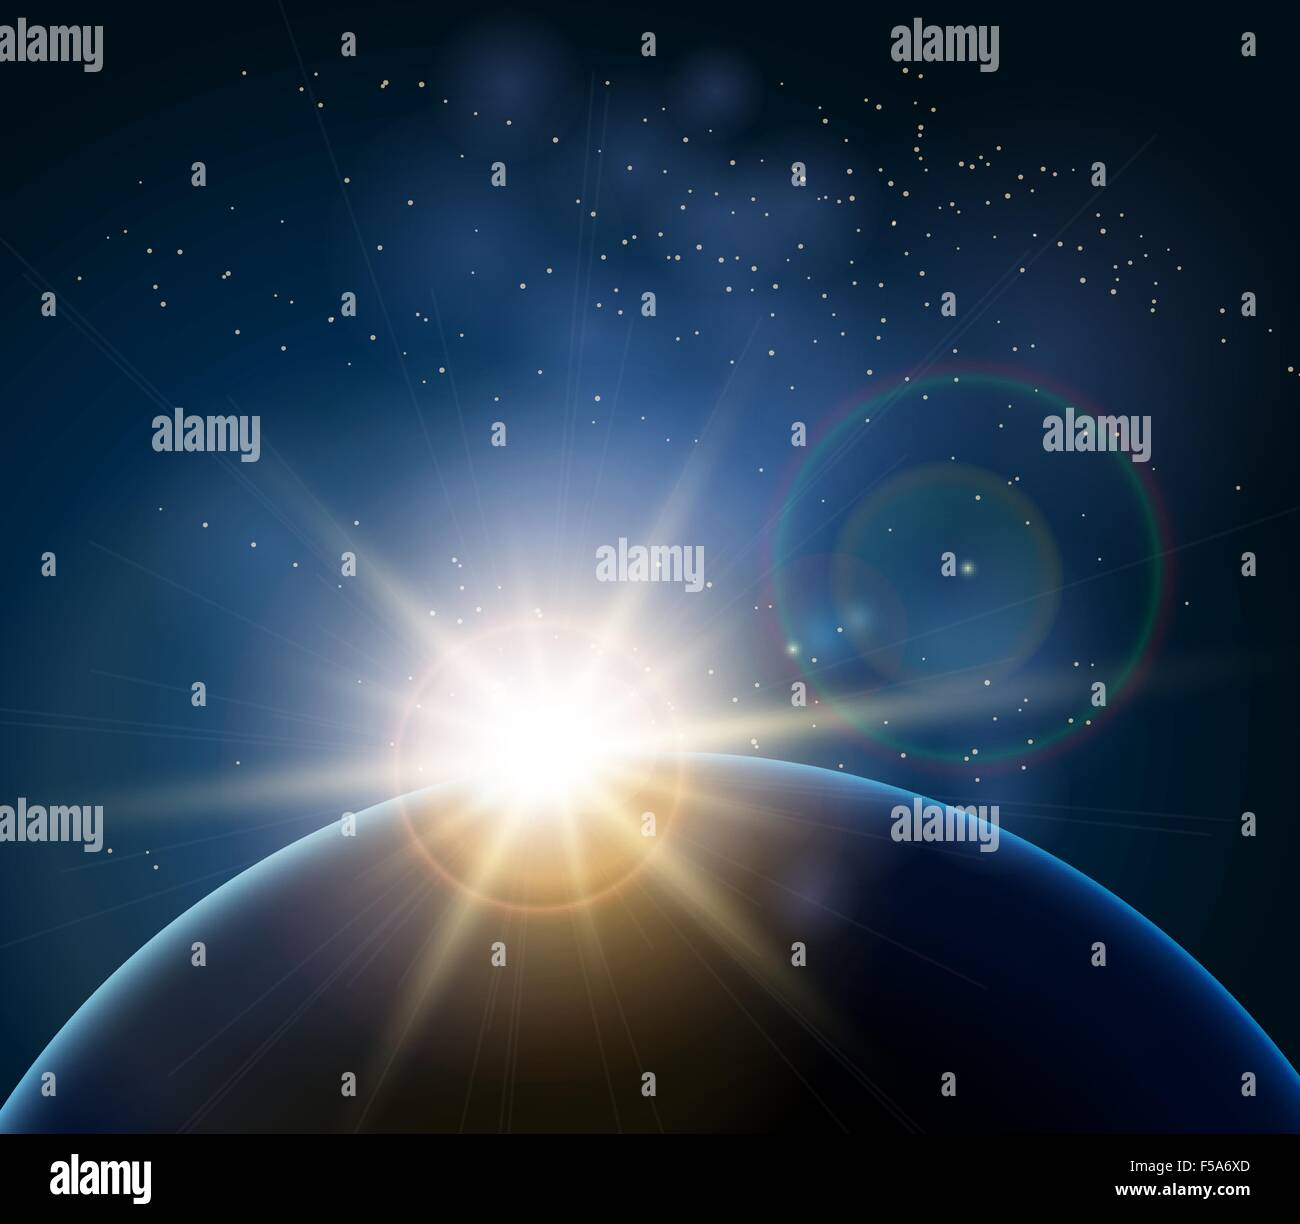 Rising Sun over the planet Earth. Illustration in realistic style - Stock Vector